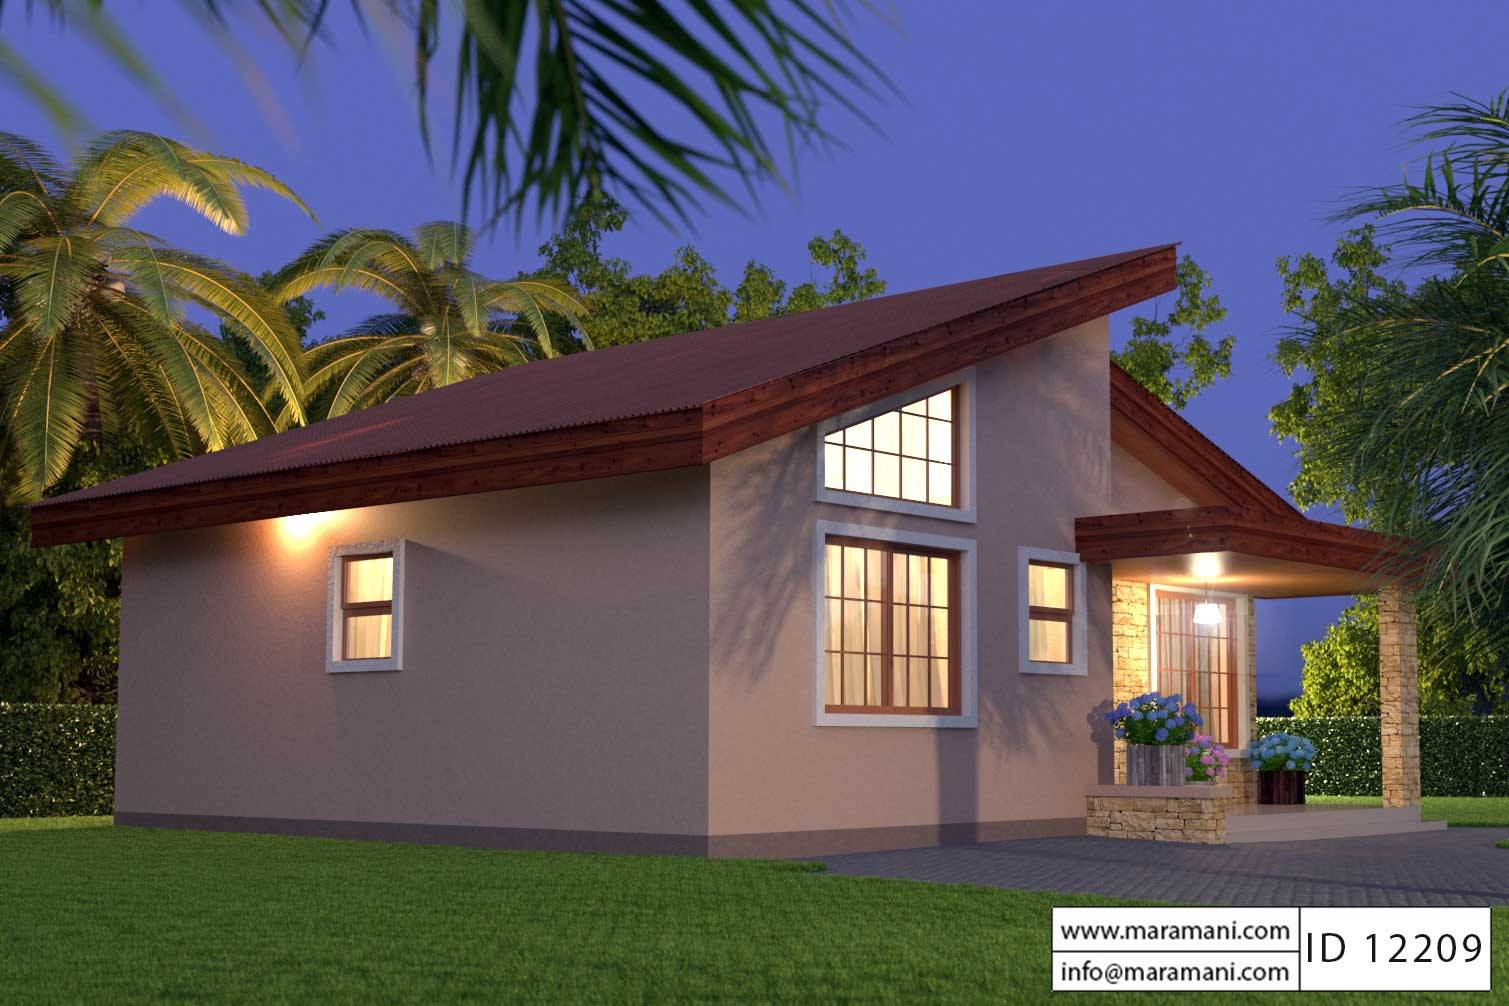 Two bedroom house id 12209 for Two bedroom home plans